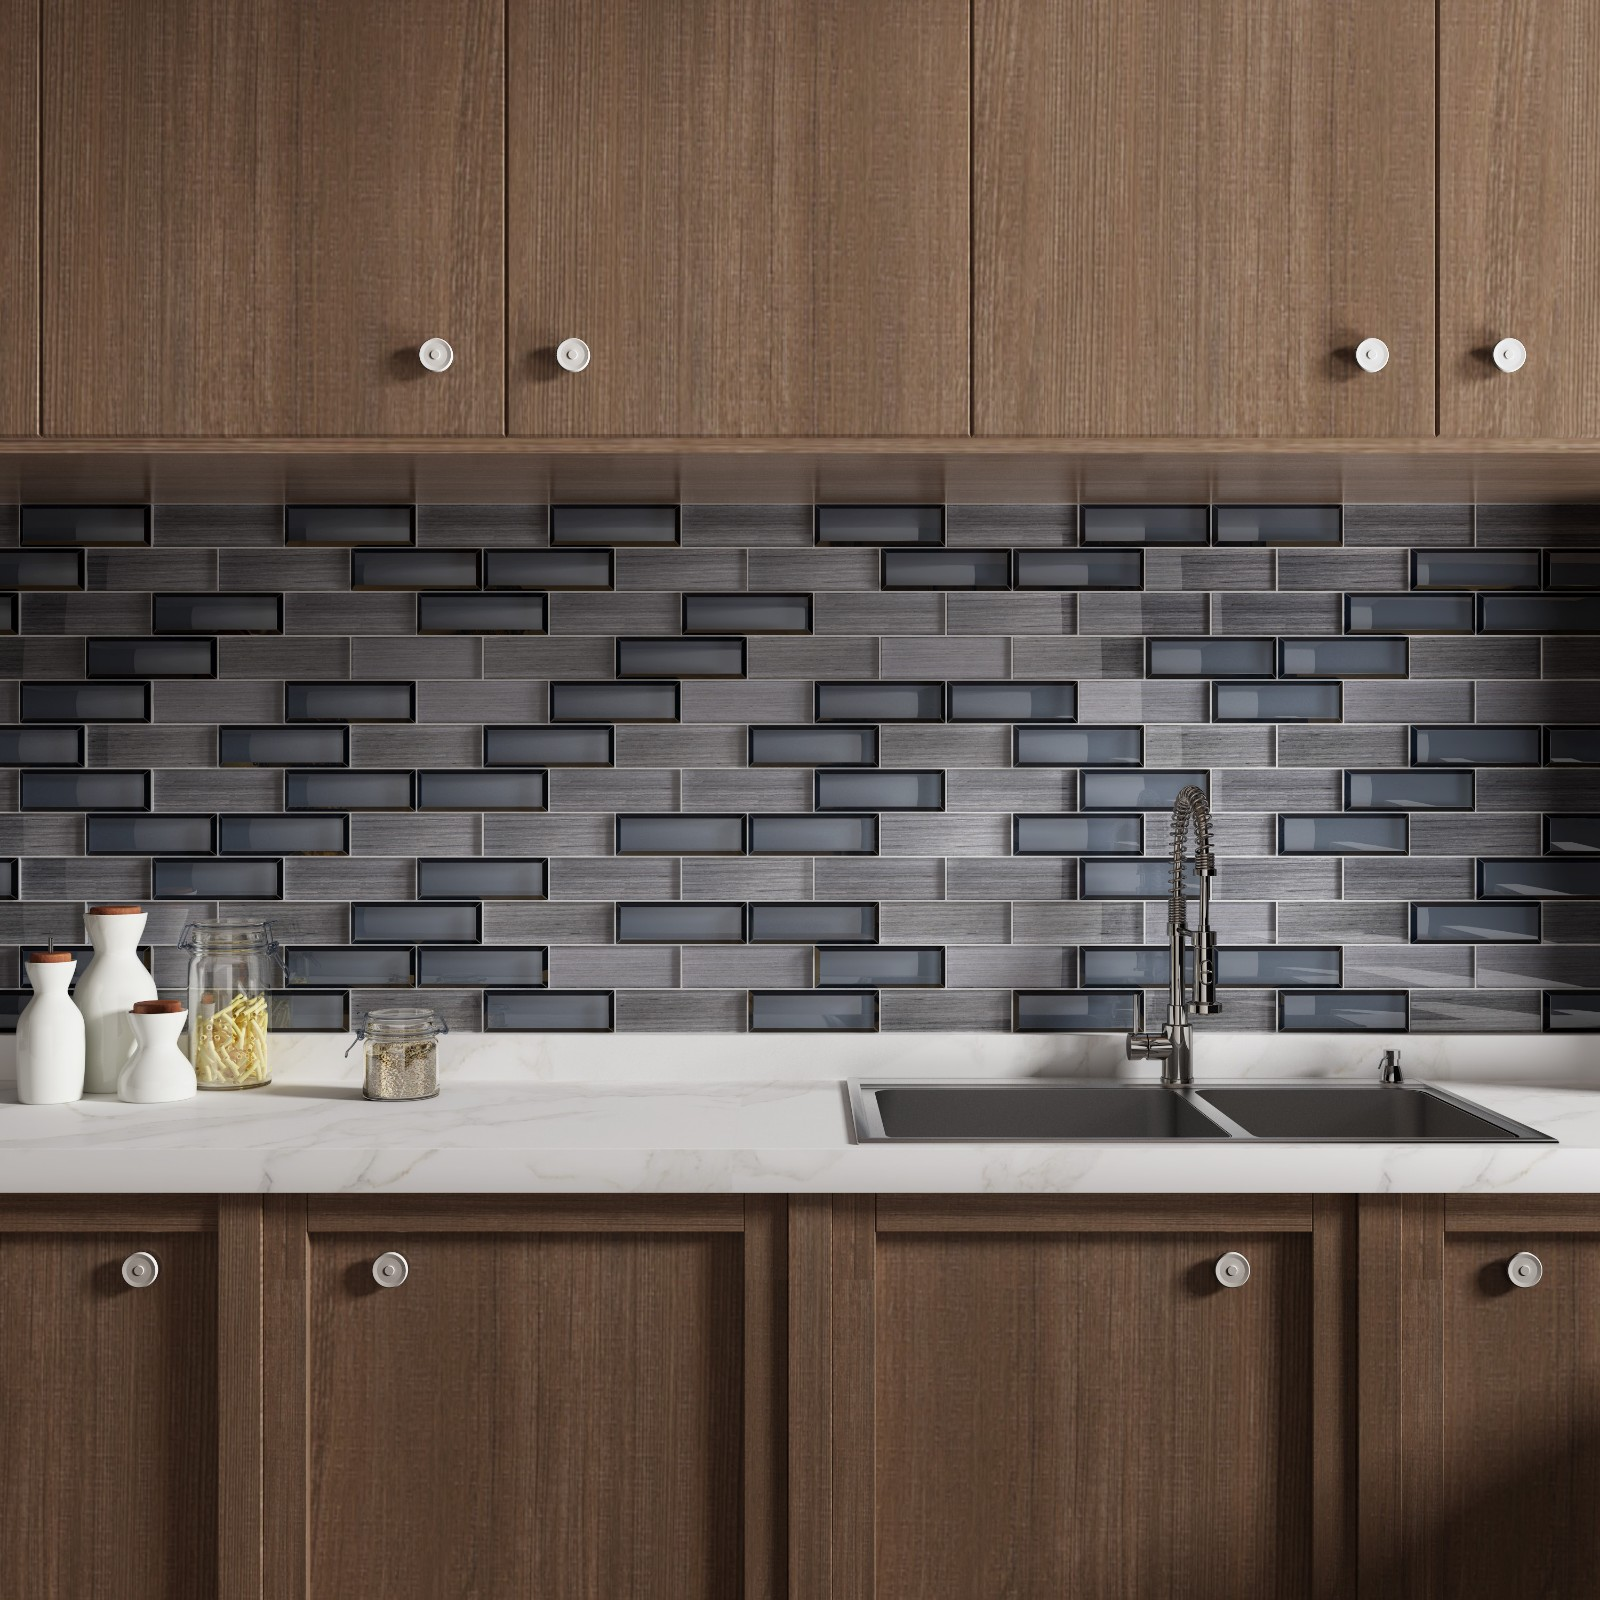 Heng Xing-Kitchen Backsplash Supplier, Glass Mosaic Tile Sheets | Heng Xing-5